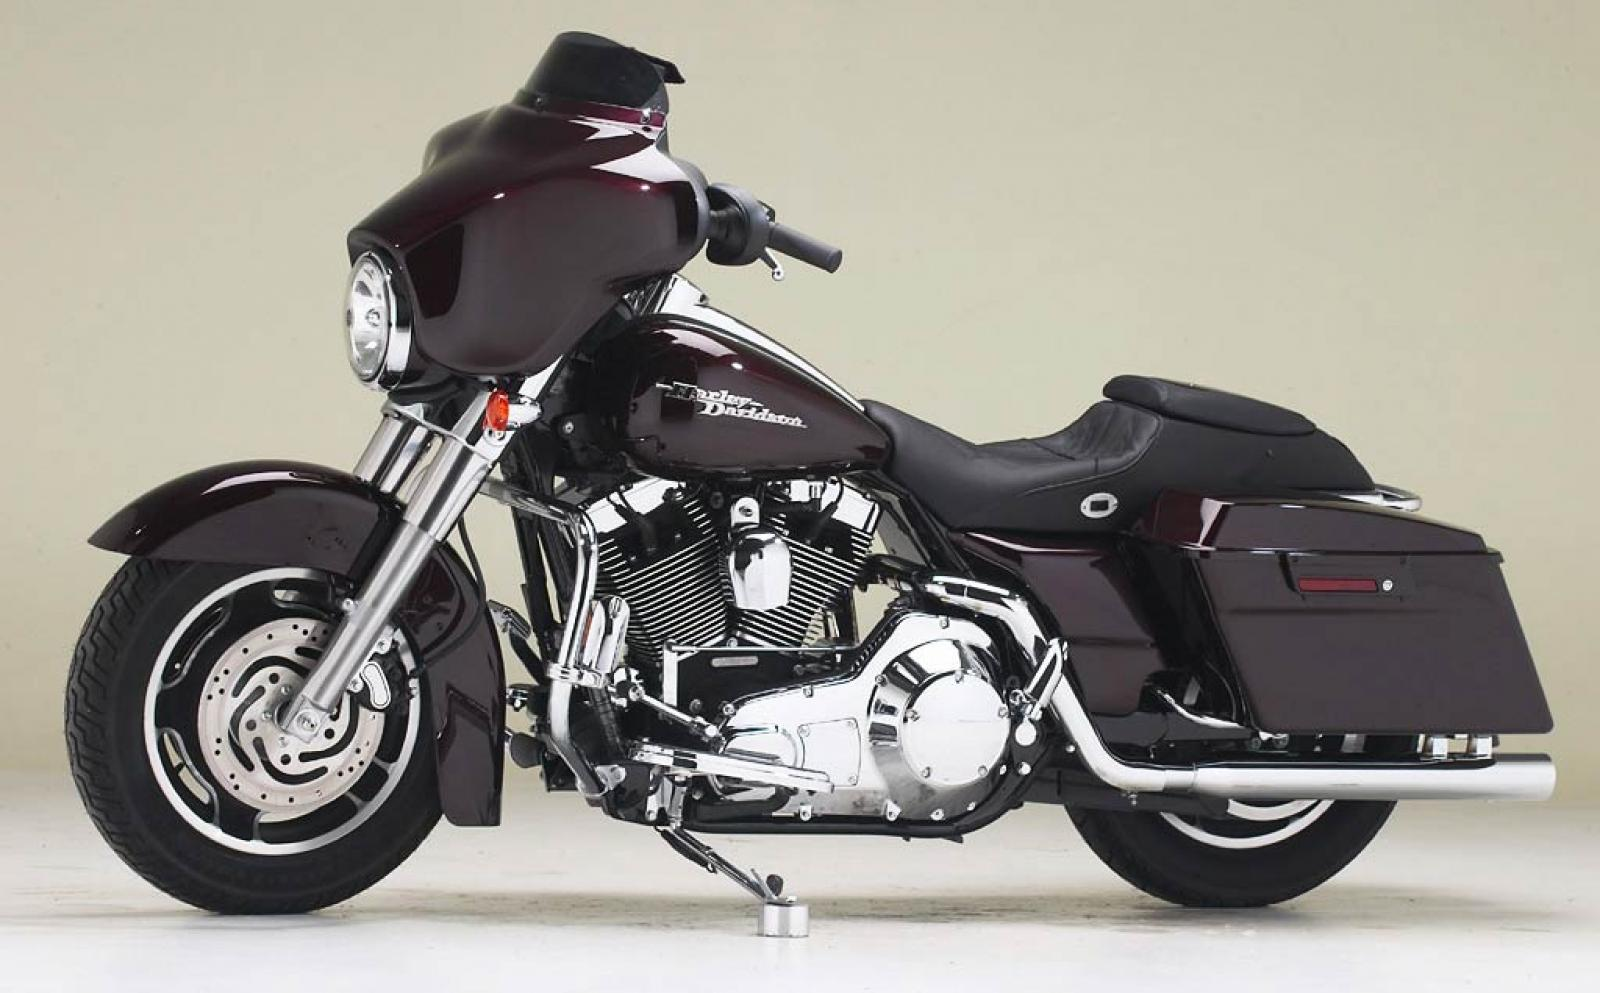 2006 harley davidson flhx street glide moto zombdrive com. Black Bedroom Furniture Sets. Home Design Ideas